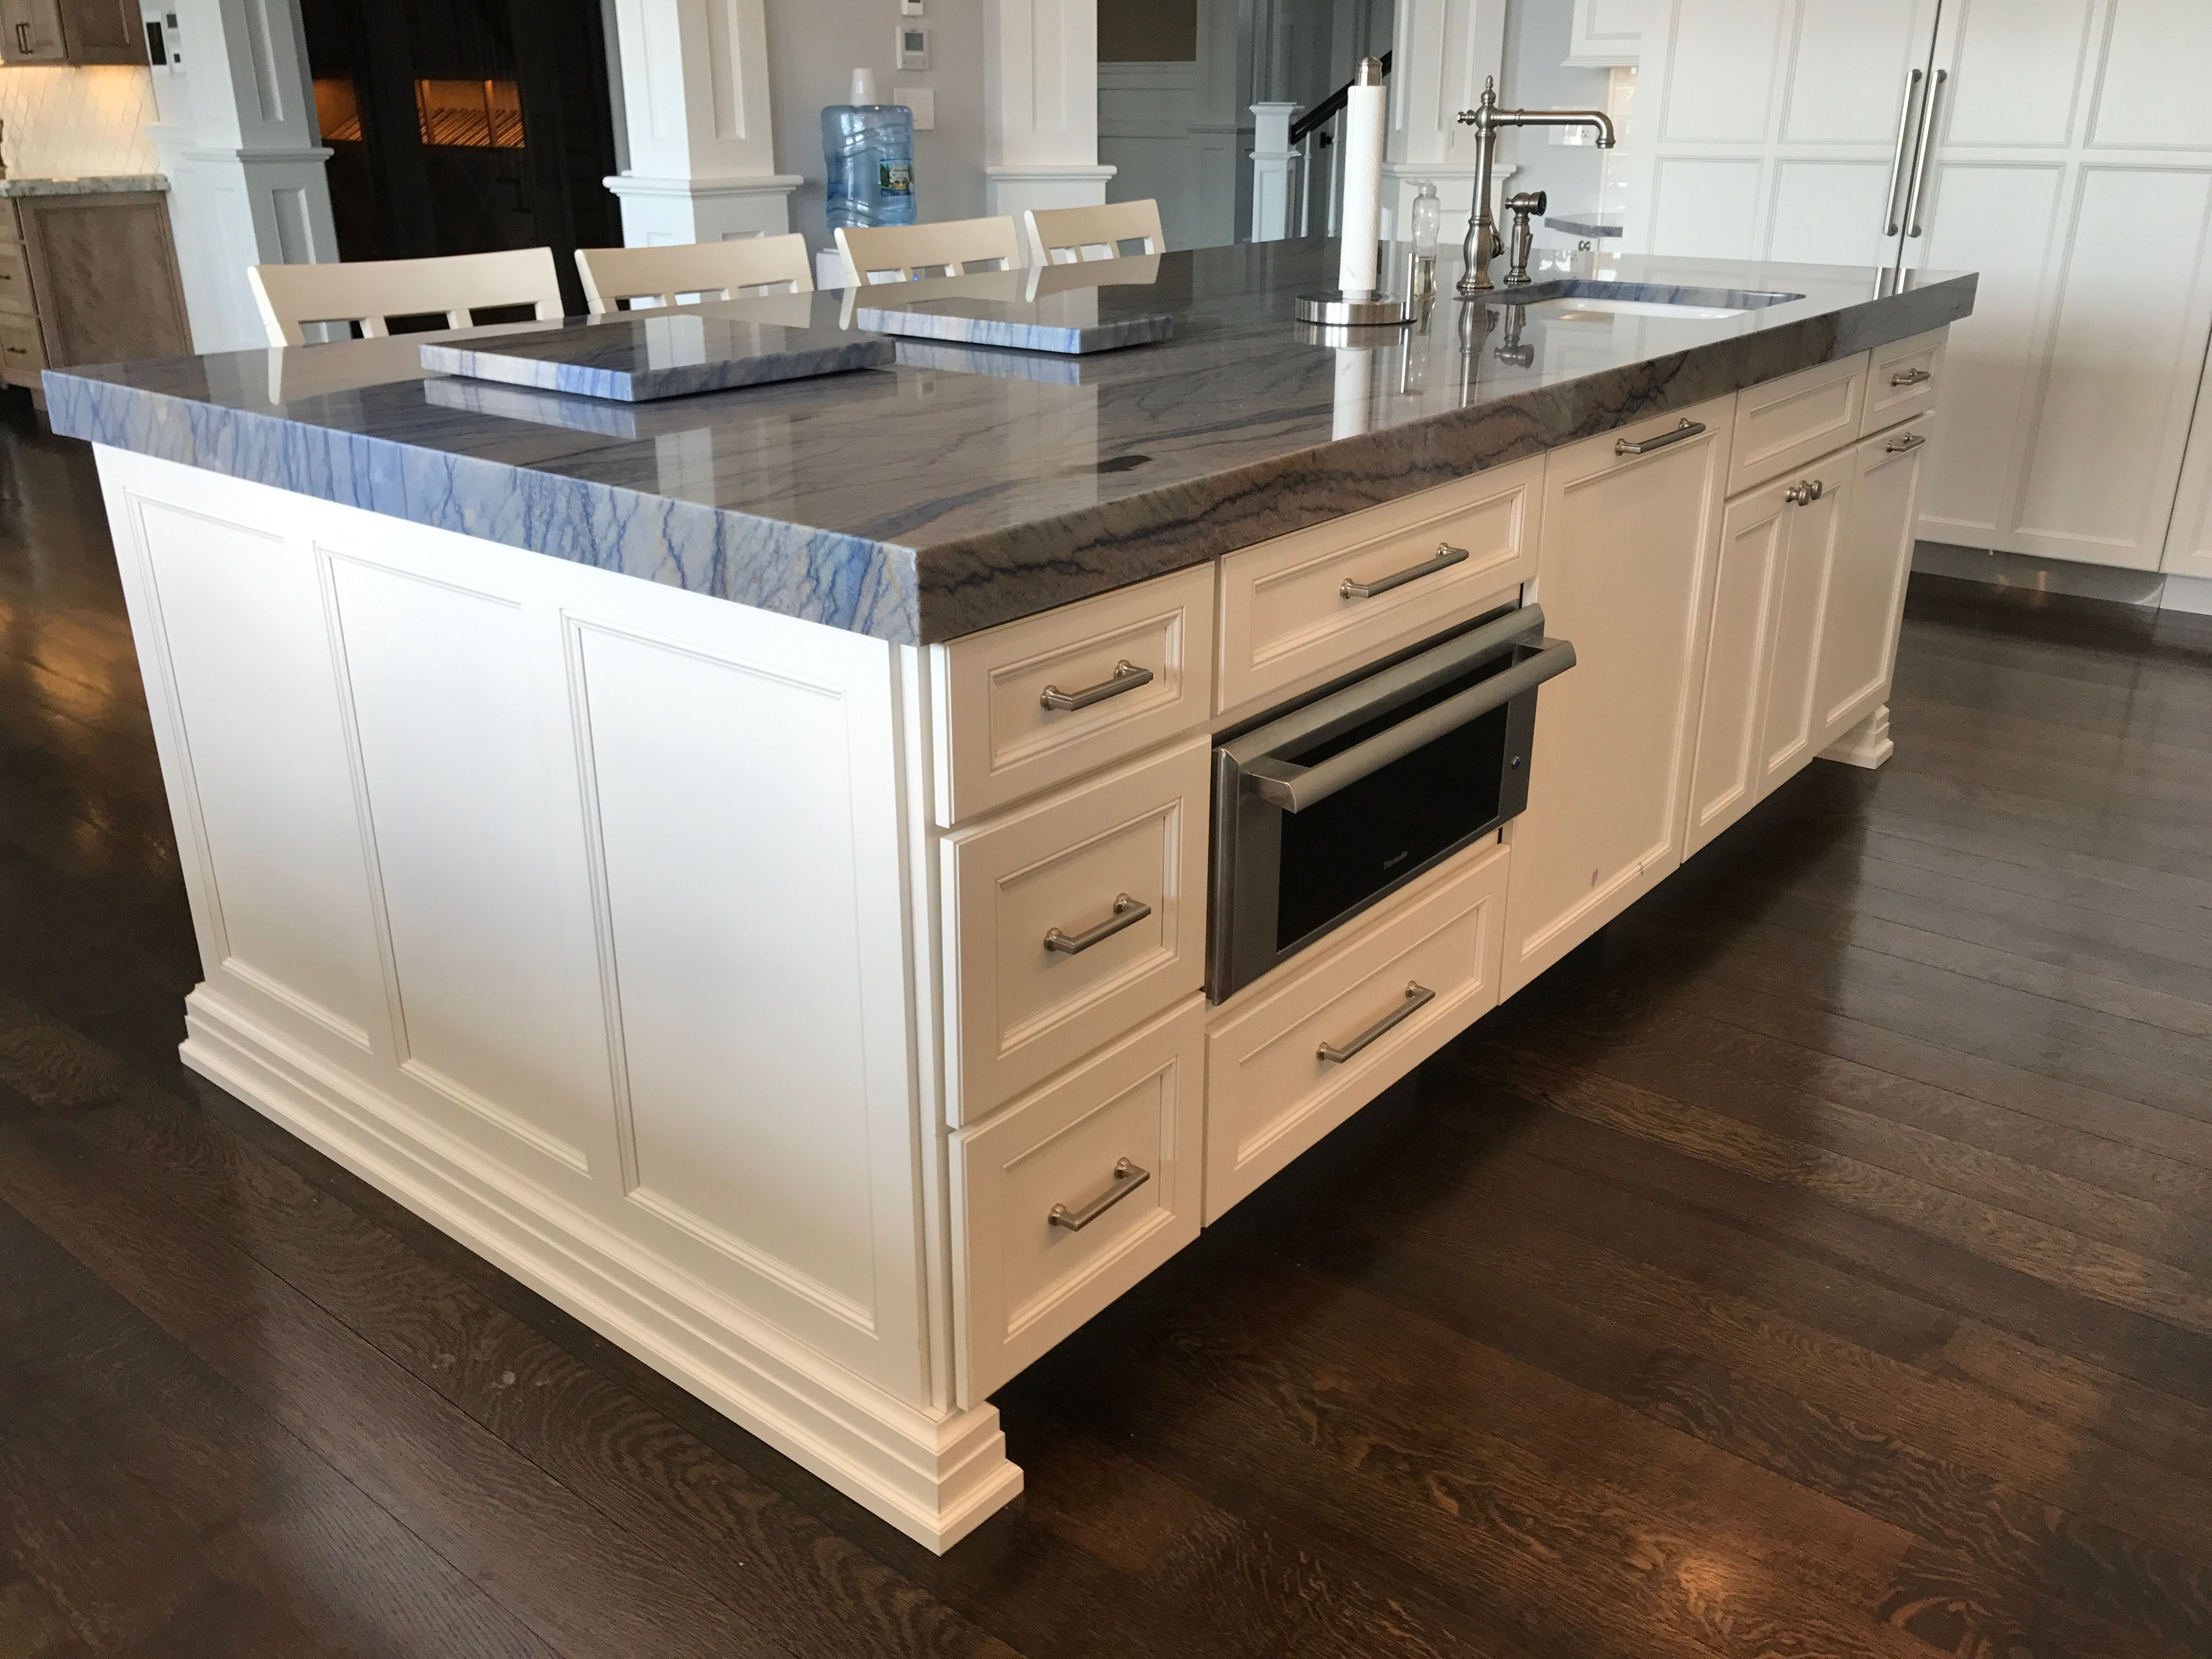 3 Mitered Counter Tops Warming Draw In Island End Panel Details Kitchens Pinterest